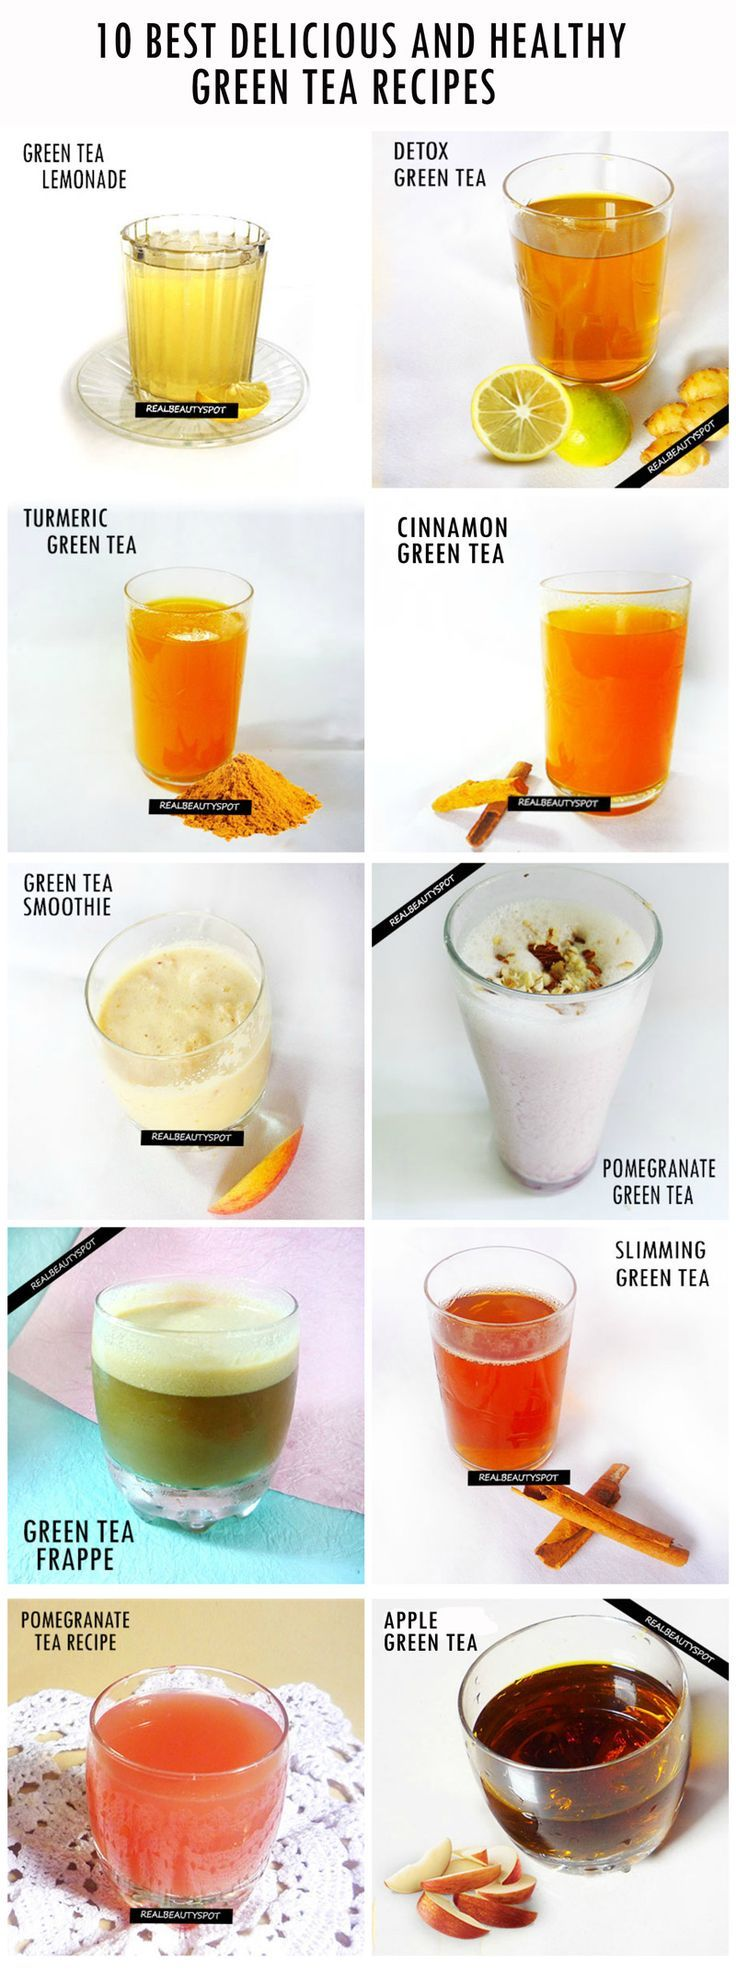 10 BEST GREEN TEA RECIPES FOR HEALTH and BEAUTY